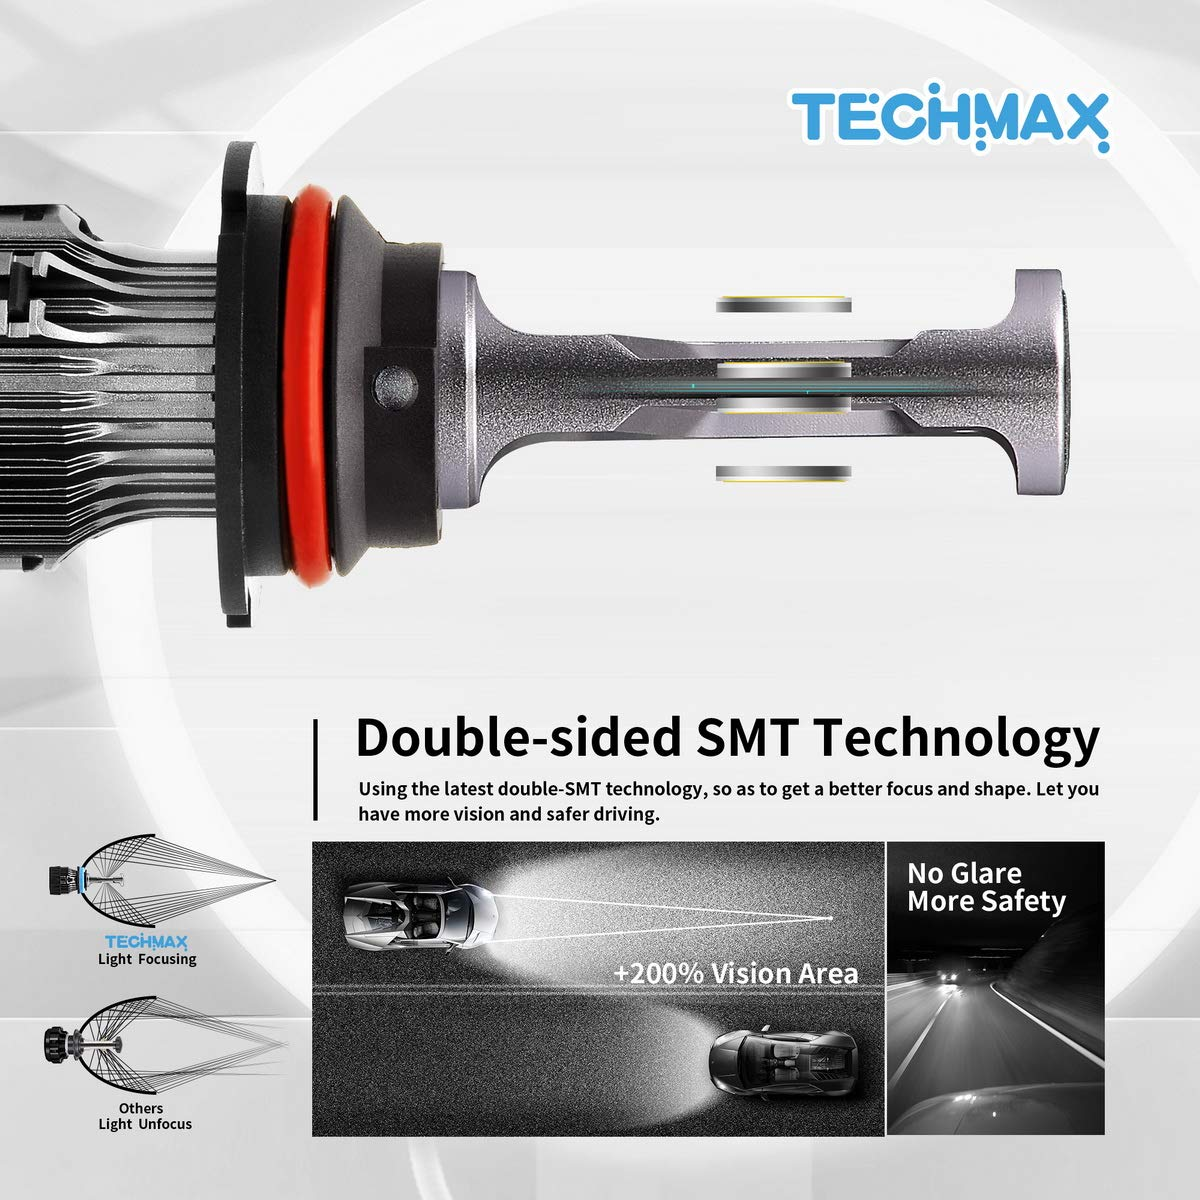 of 2 TECHMAX Mini 9005 LED Headlight Bulbs,60W 10000Lm 4700Lux 6500K Cool White Extremely Bright 30mm Heatsink Base CREE Chips HB3 Conversion Kit